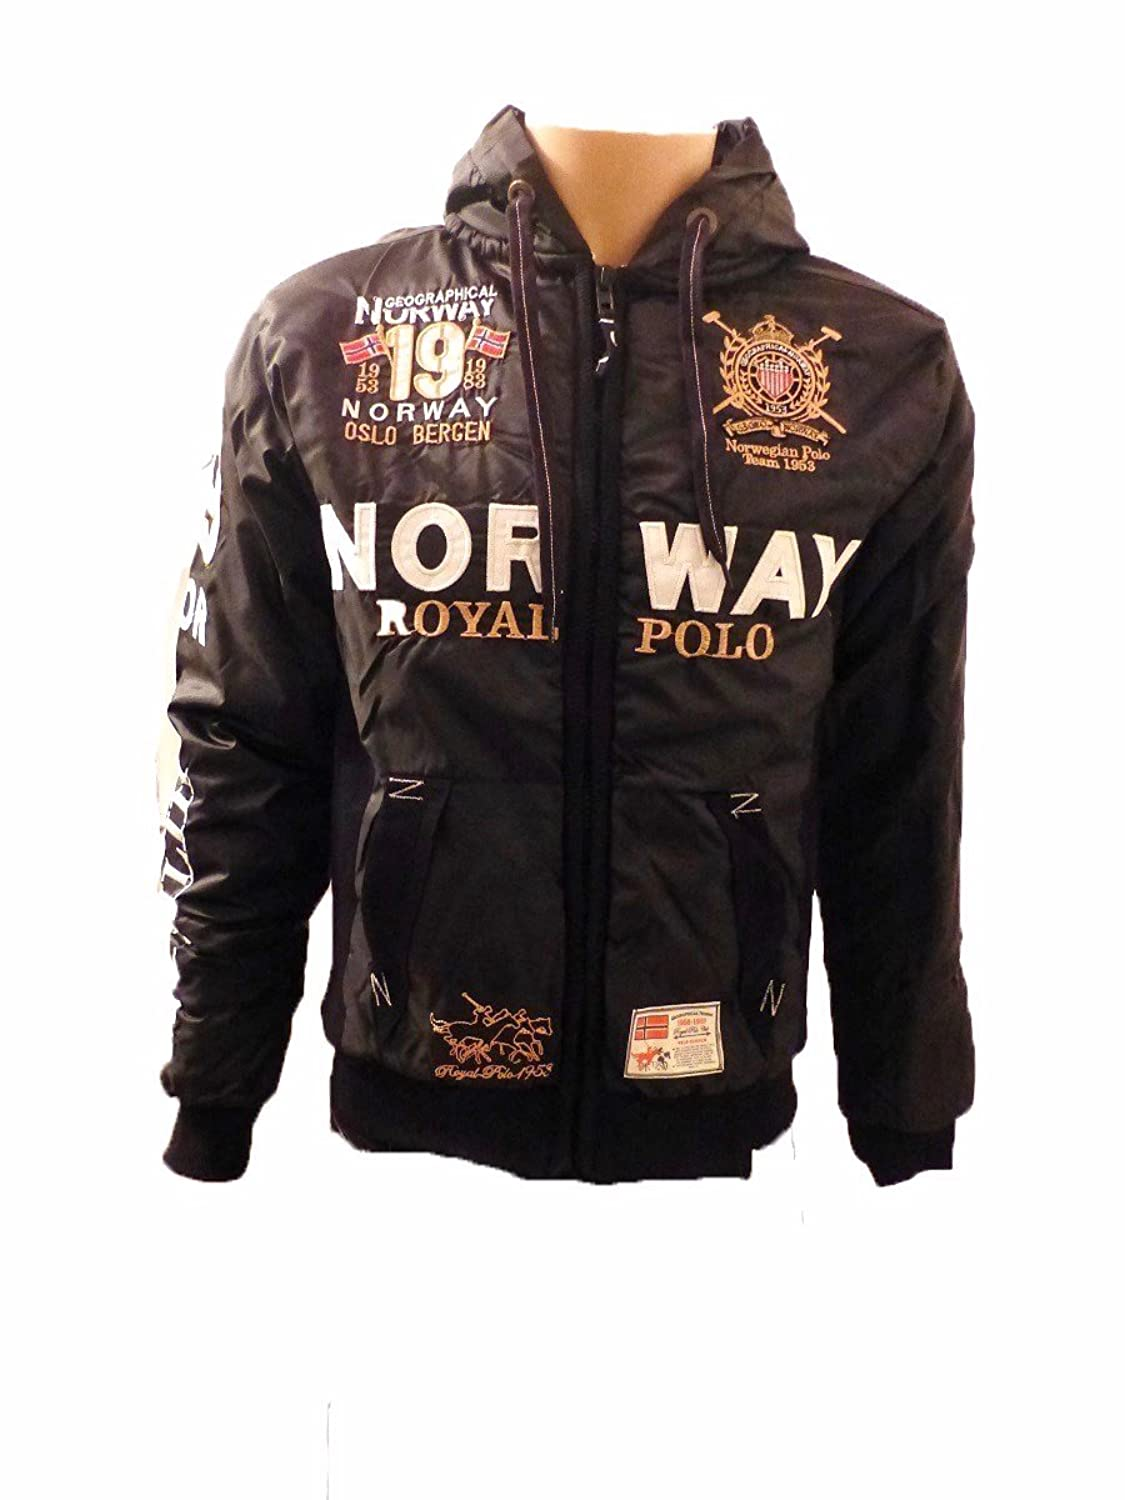 GEOGRAPHICAL NORWAY ROYAL POLO SPORT COLLECTION HERREN WINTER JACKE XL